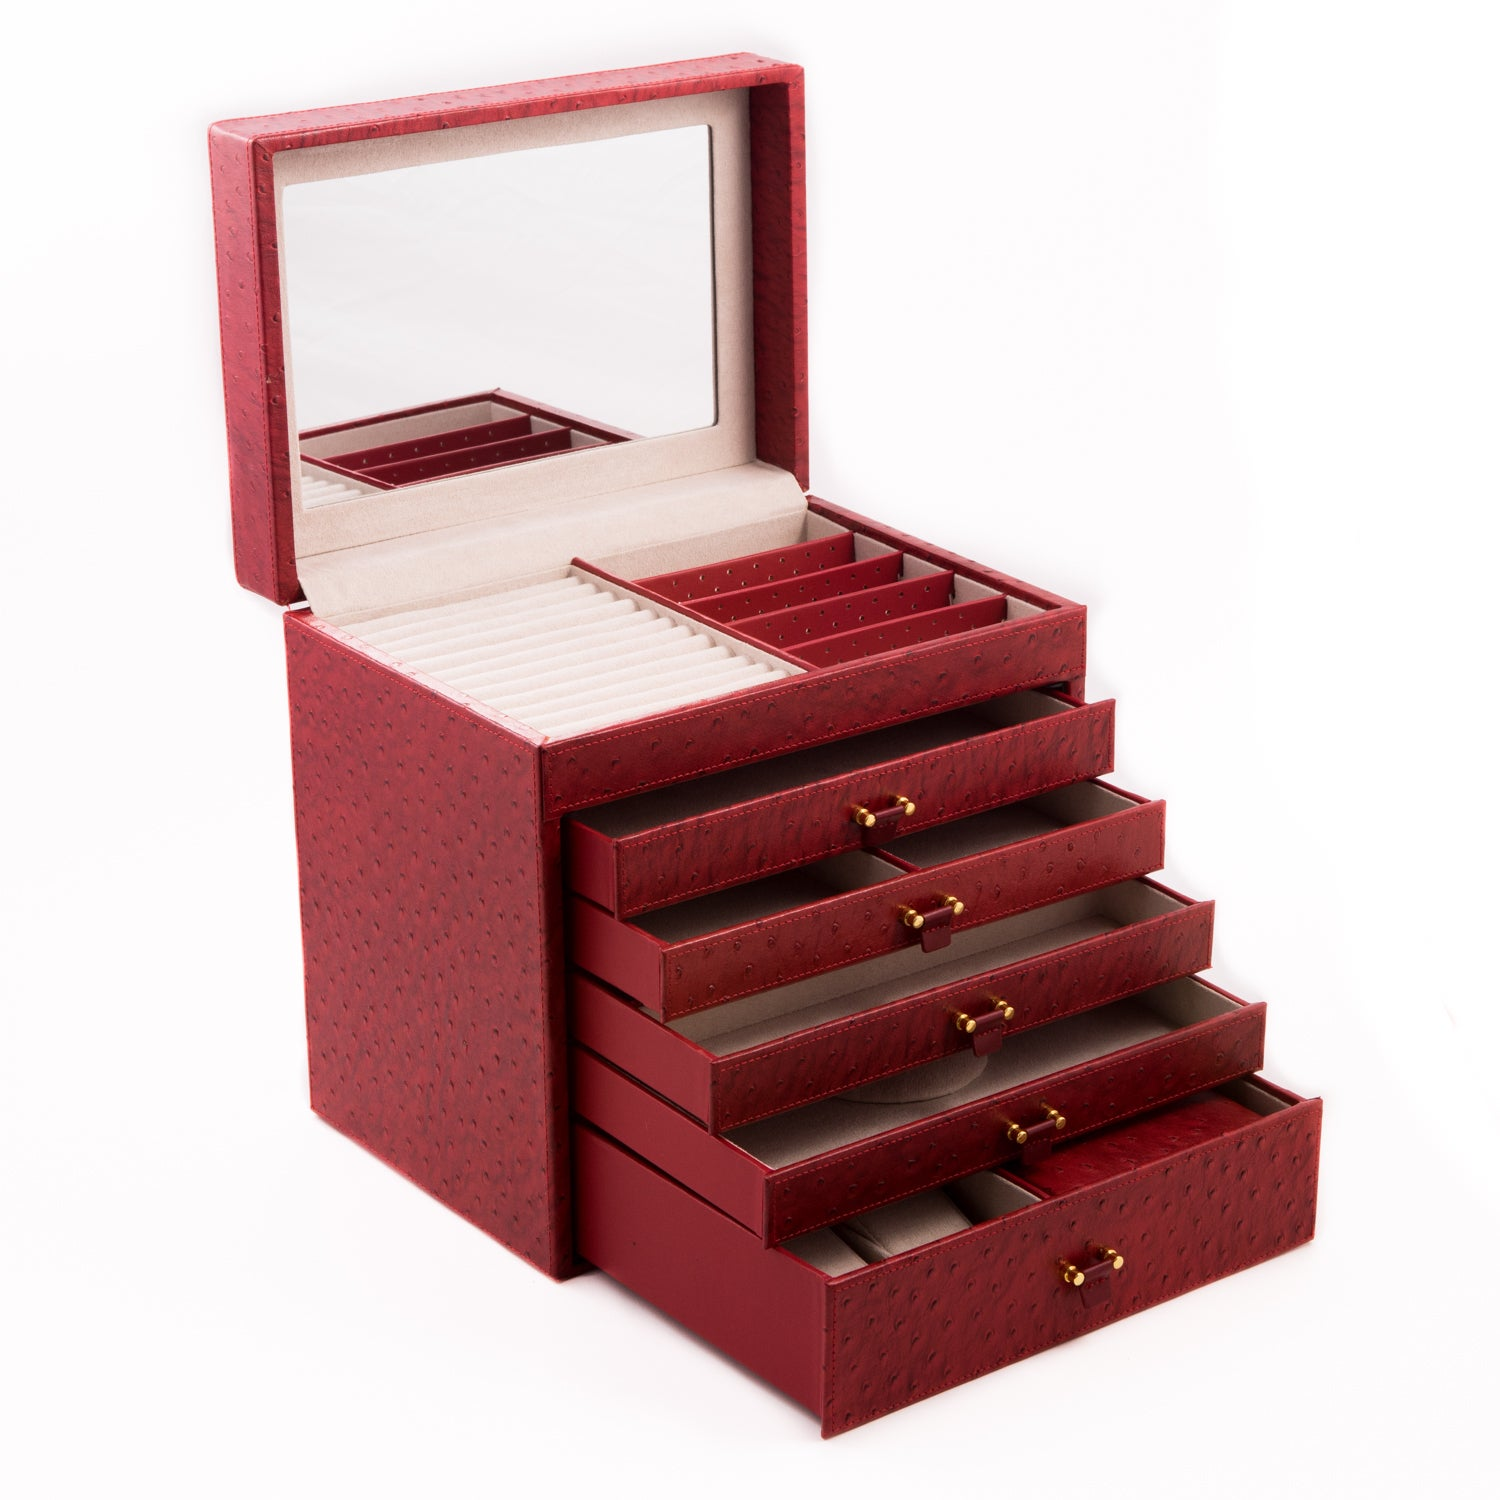 Bey Berk Charlotte Leather Jewelry Case (RED)